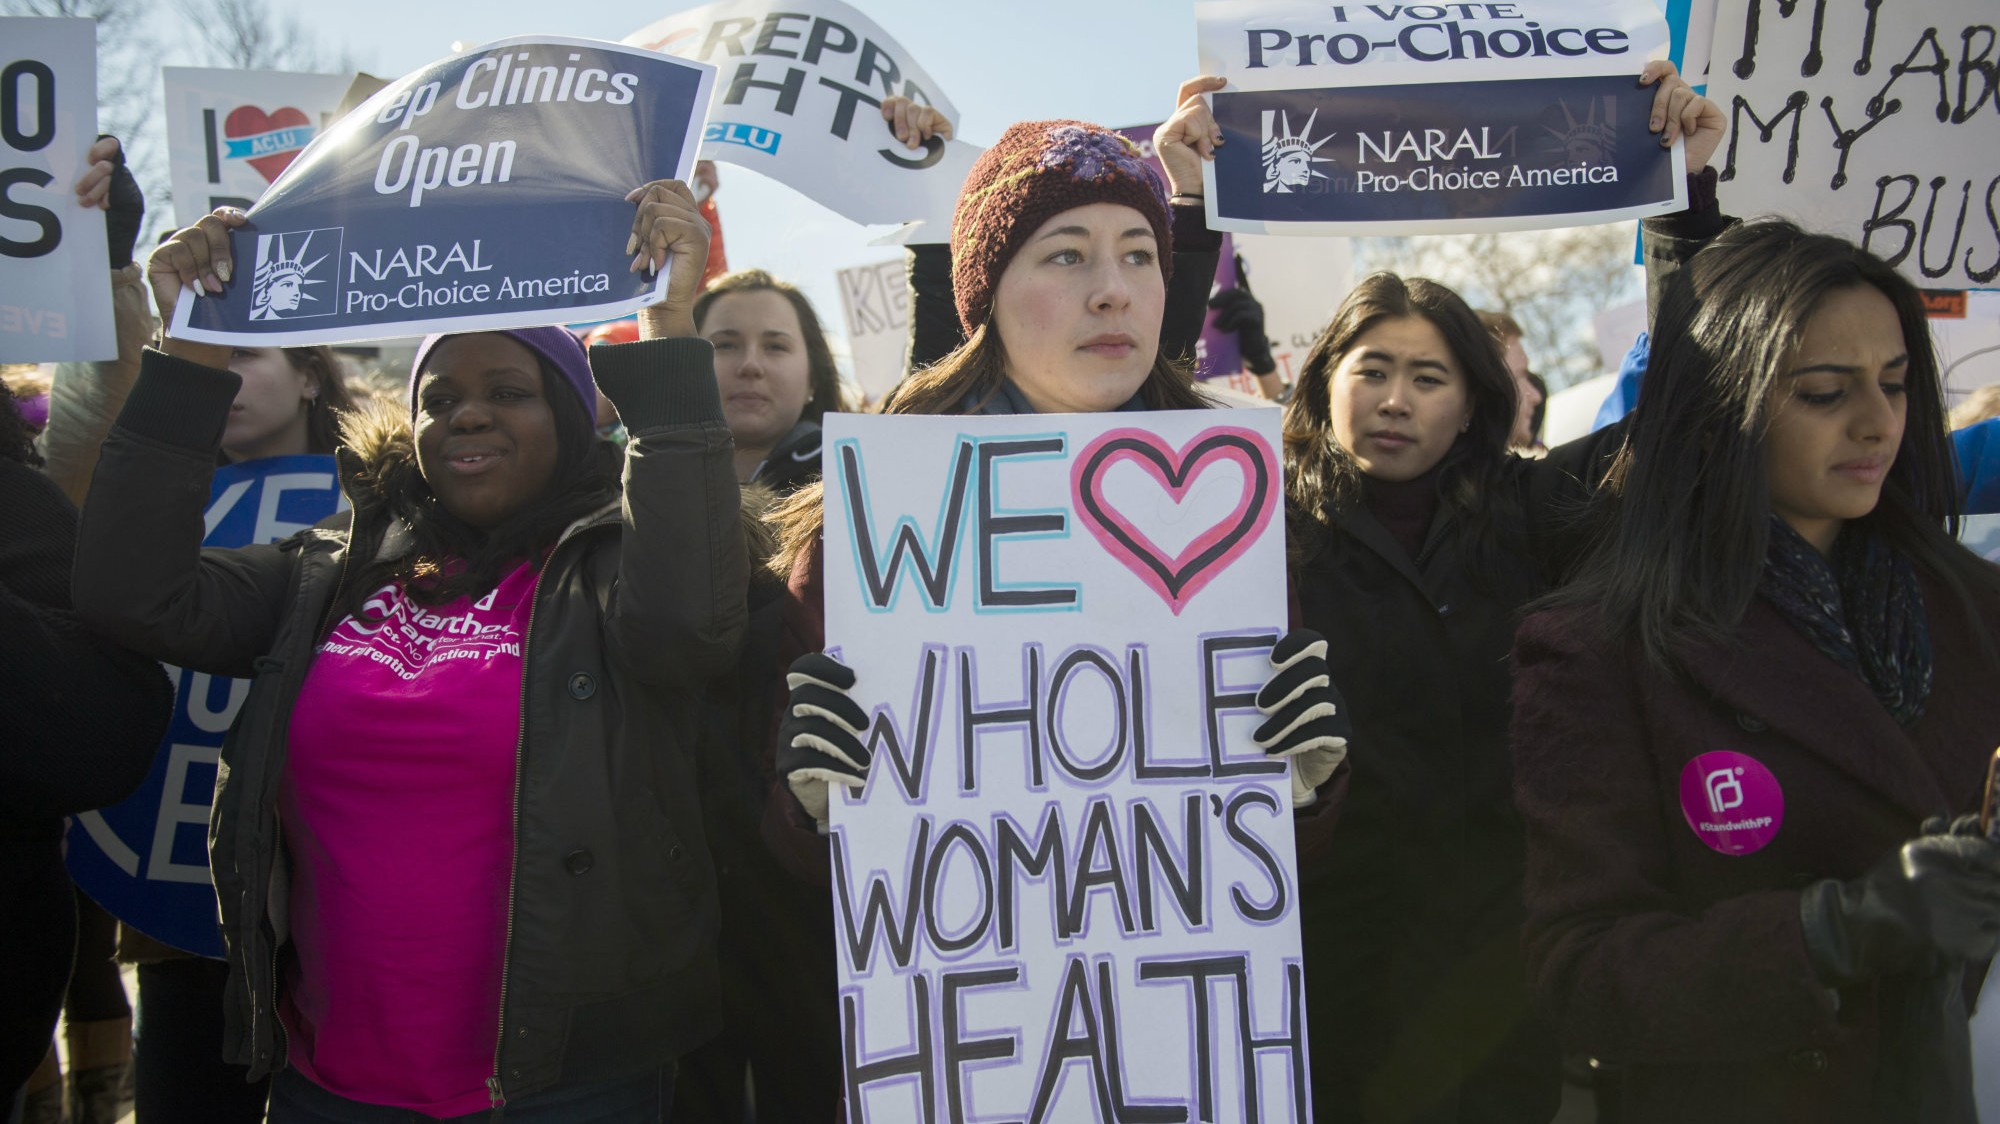 Doctors Could Face Jail Time for Performing Abortions in Oklahoma